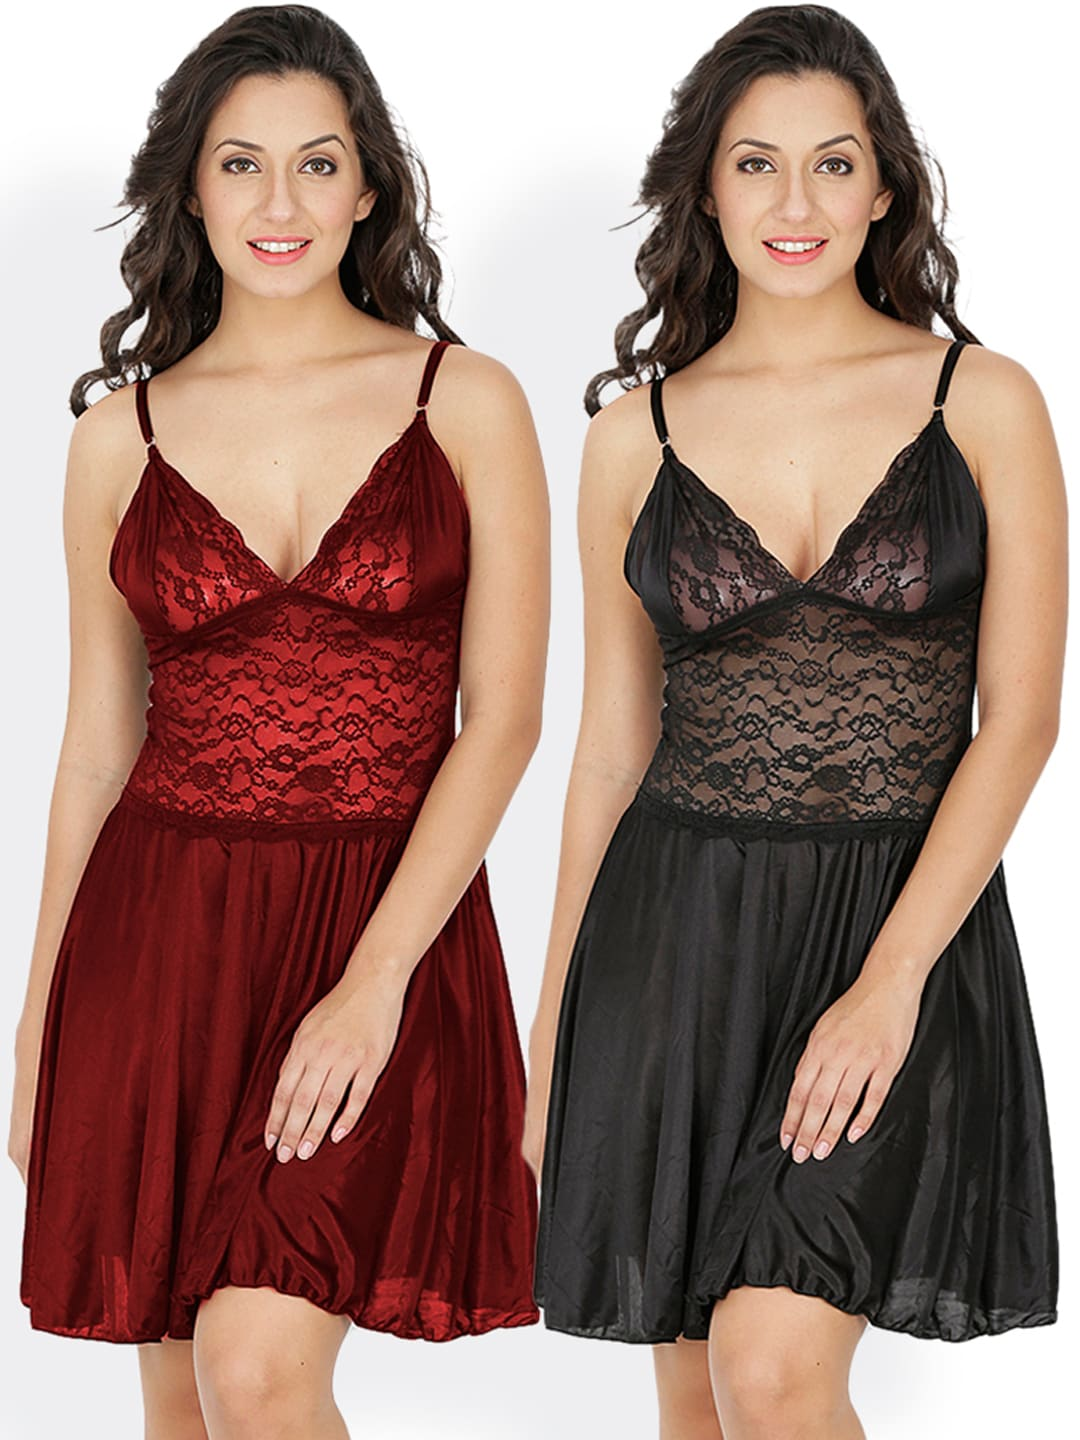 504ab403f3b82 Satin Bra Nightdress - Buy Satin Bra Nightdress online in India